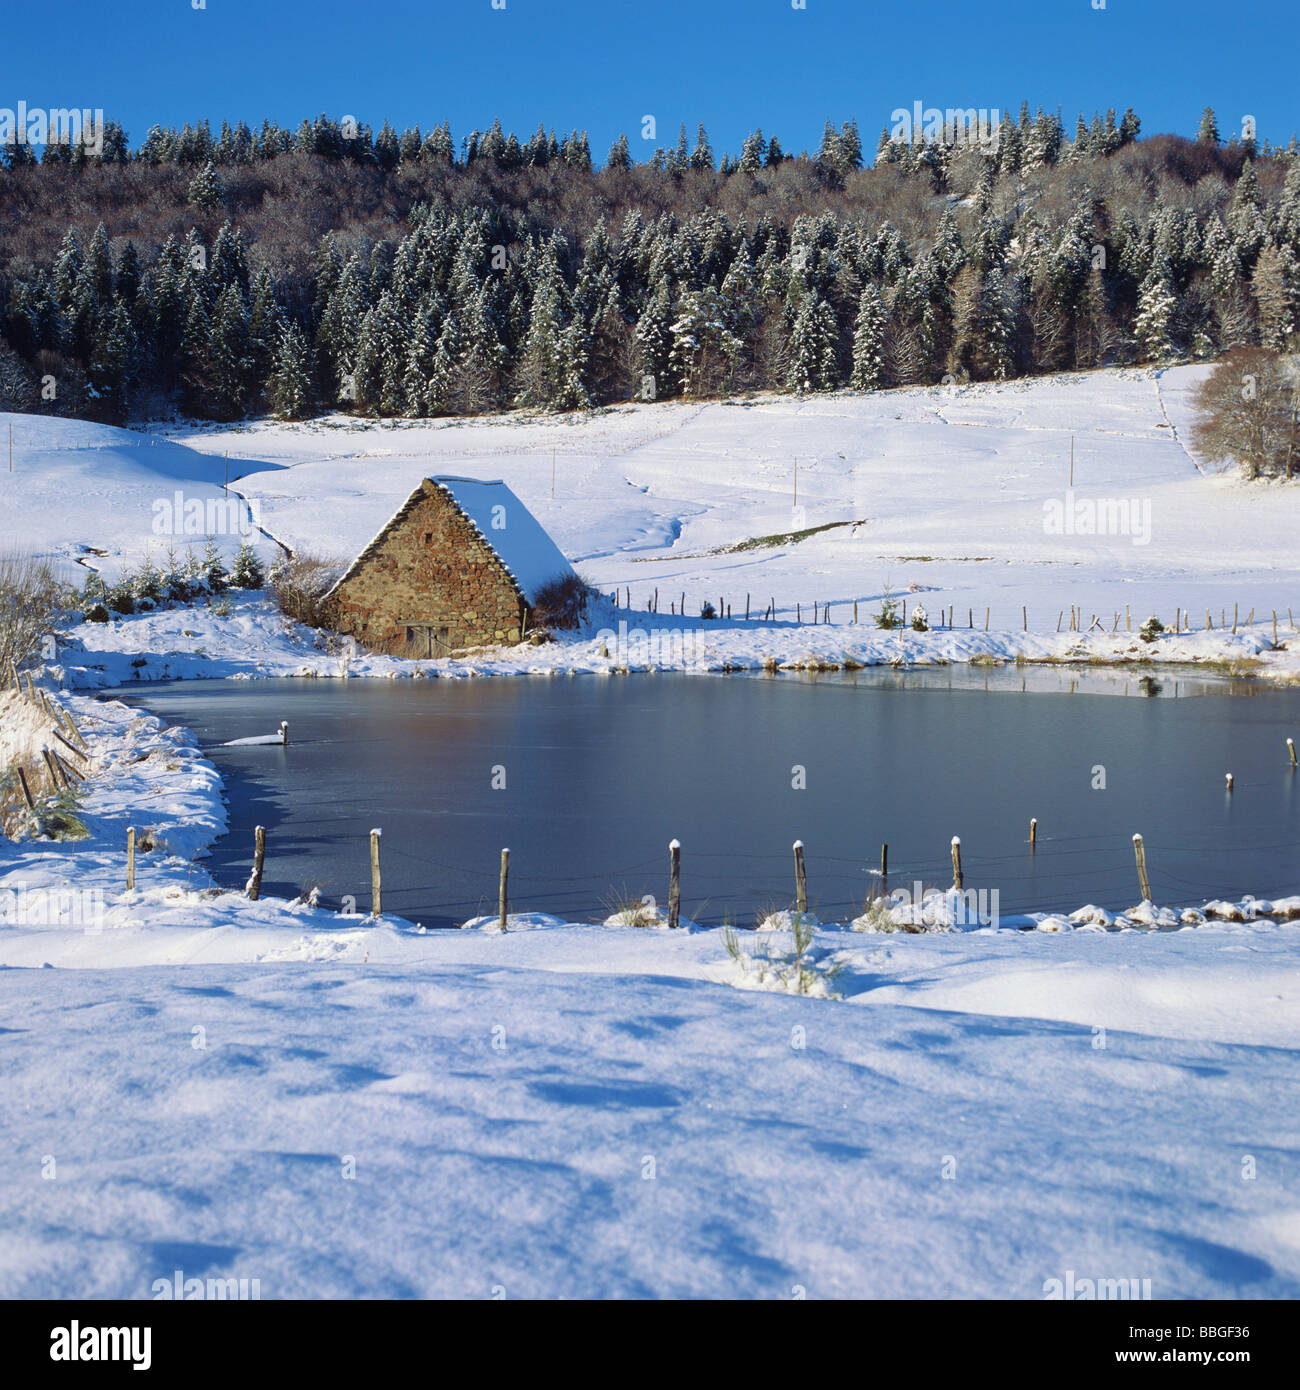 Winter scene - Old barn at the edge of a pond / lake in winter landscape - Stock Image